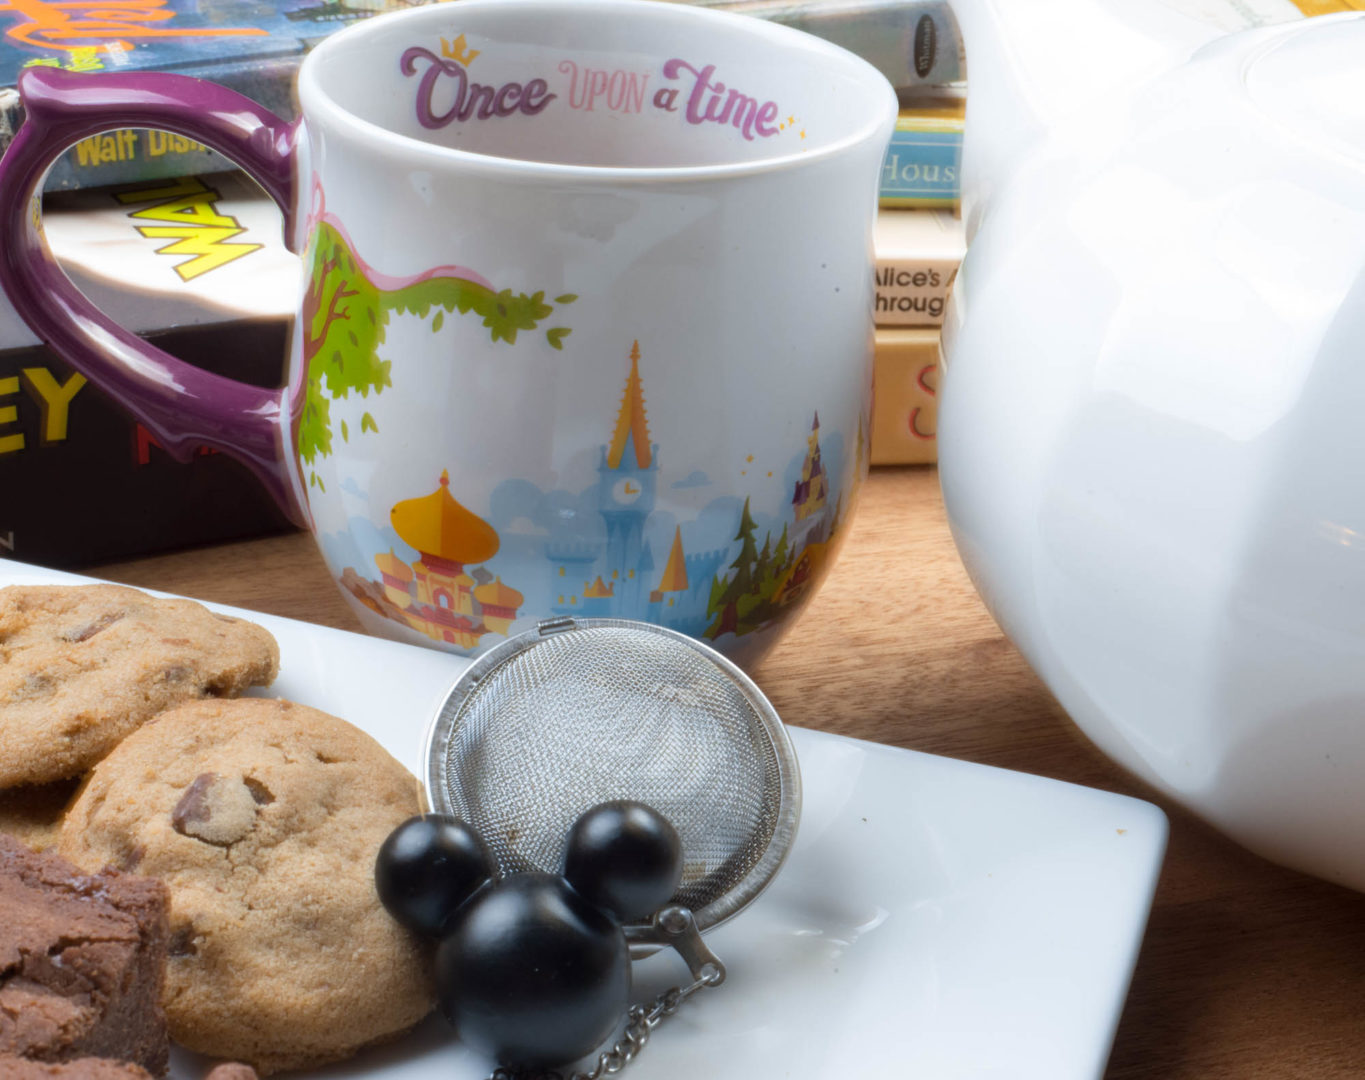 Disneyland Once Upon a Time Mug and Mickey Tea Strainers on a Tray of Cookies